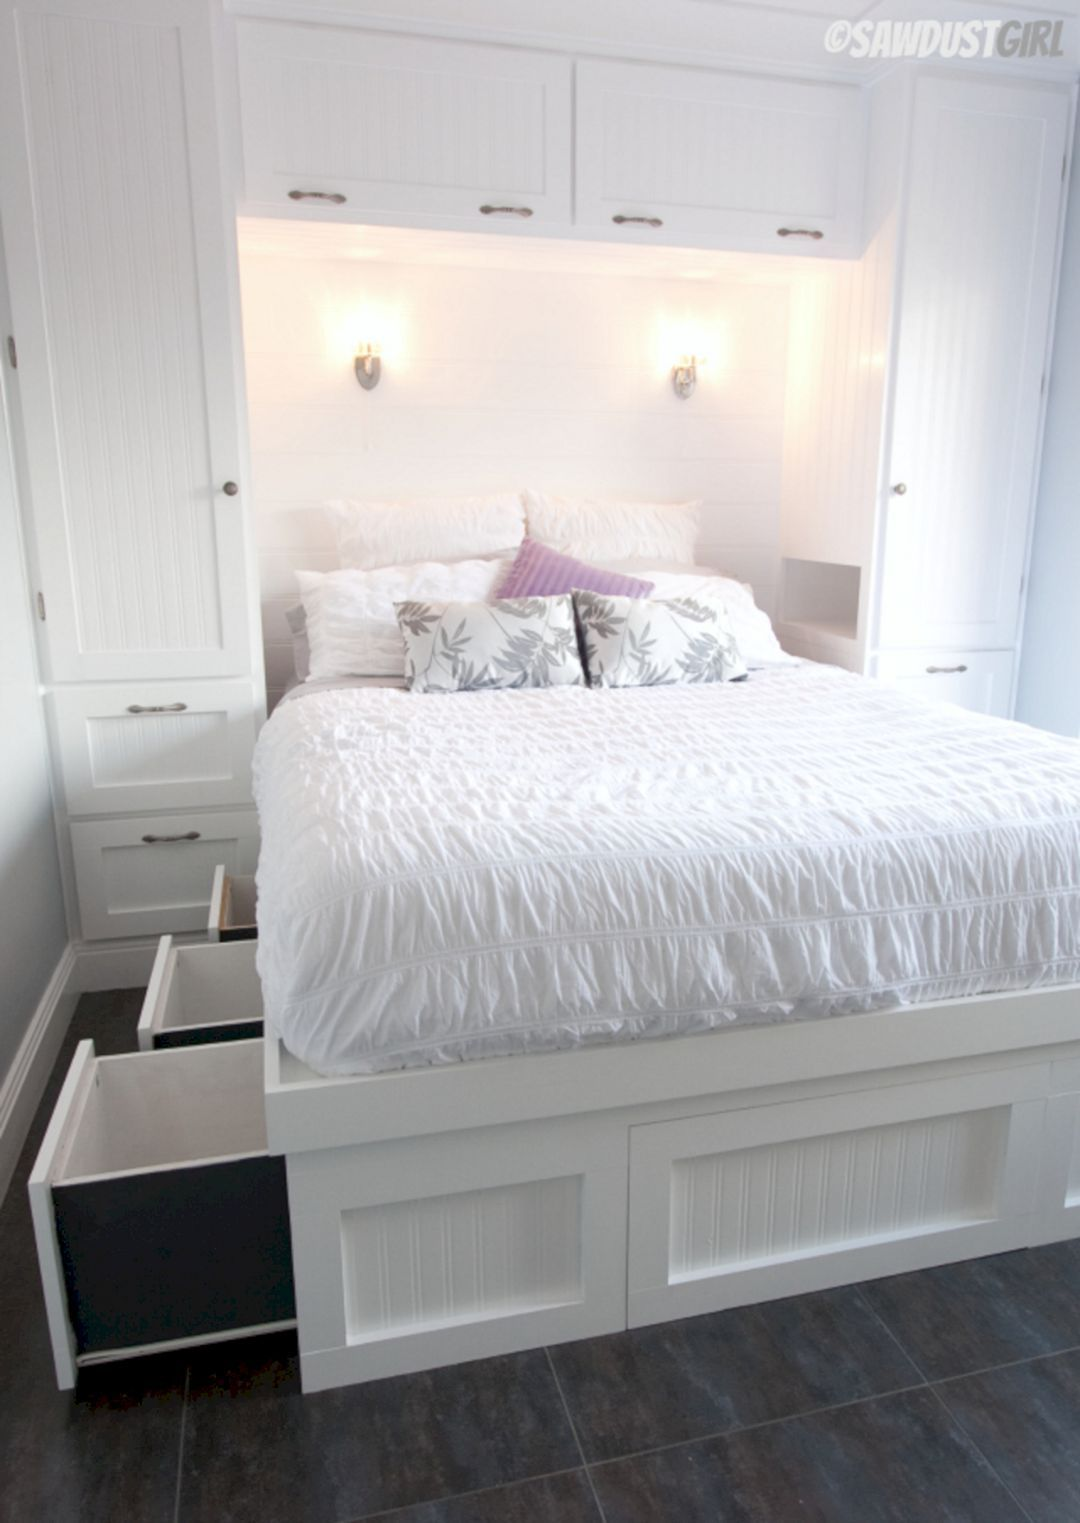 The Best Bedroom Storage Ideas For Small Room Spaces No 95 – DECOREDO